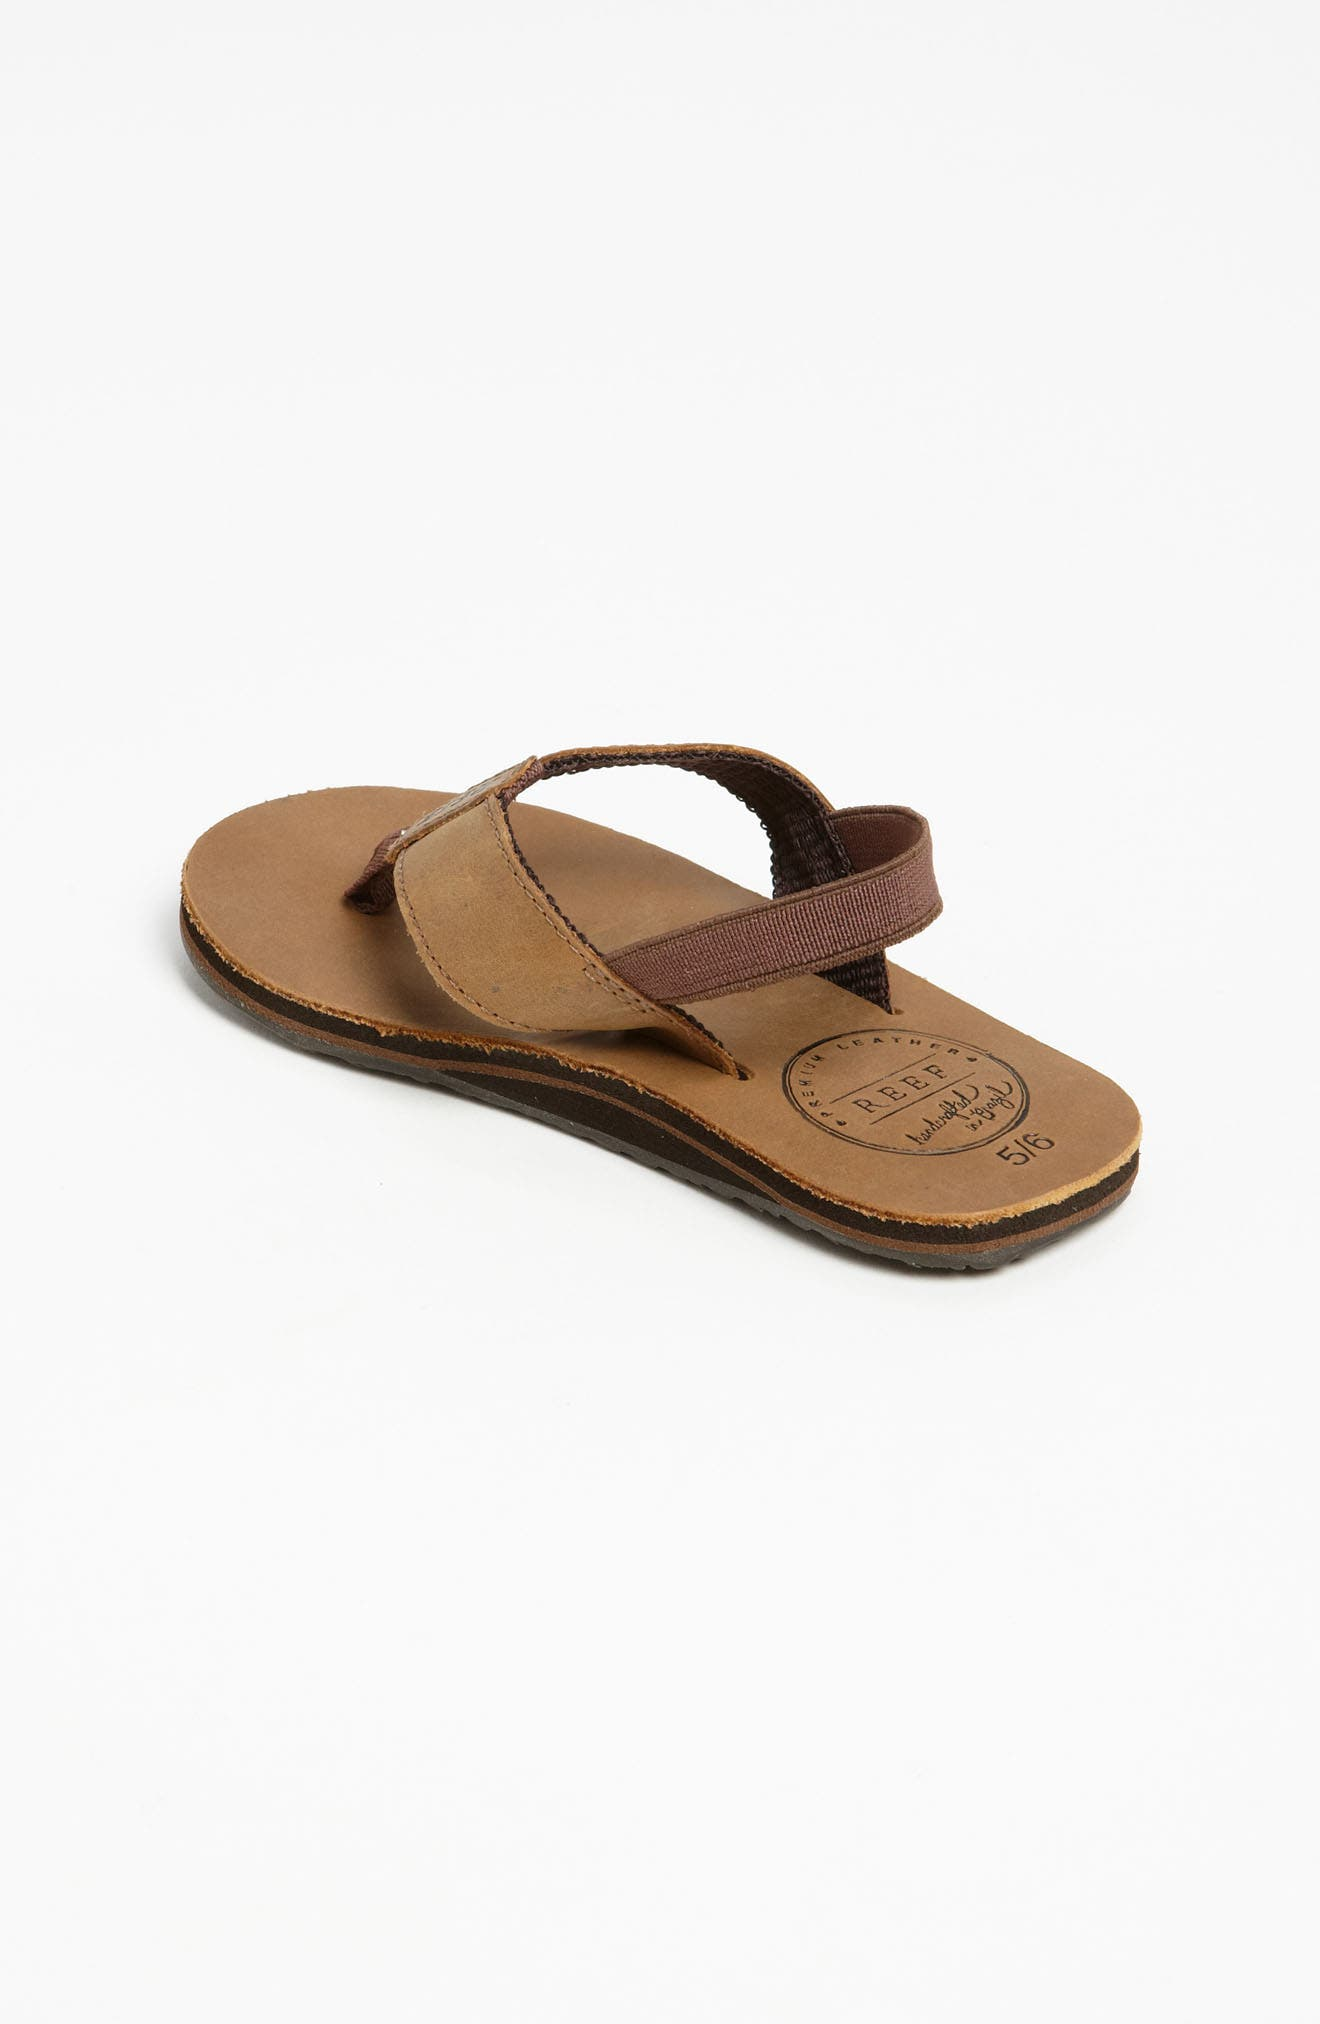 REEF, 'Grom' Leather Flip-Flop, Alternate thumbnail 2, color, BRONZE BROWN